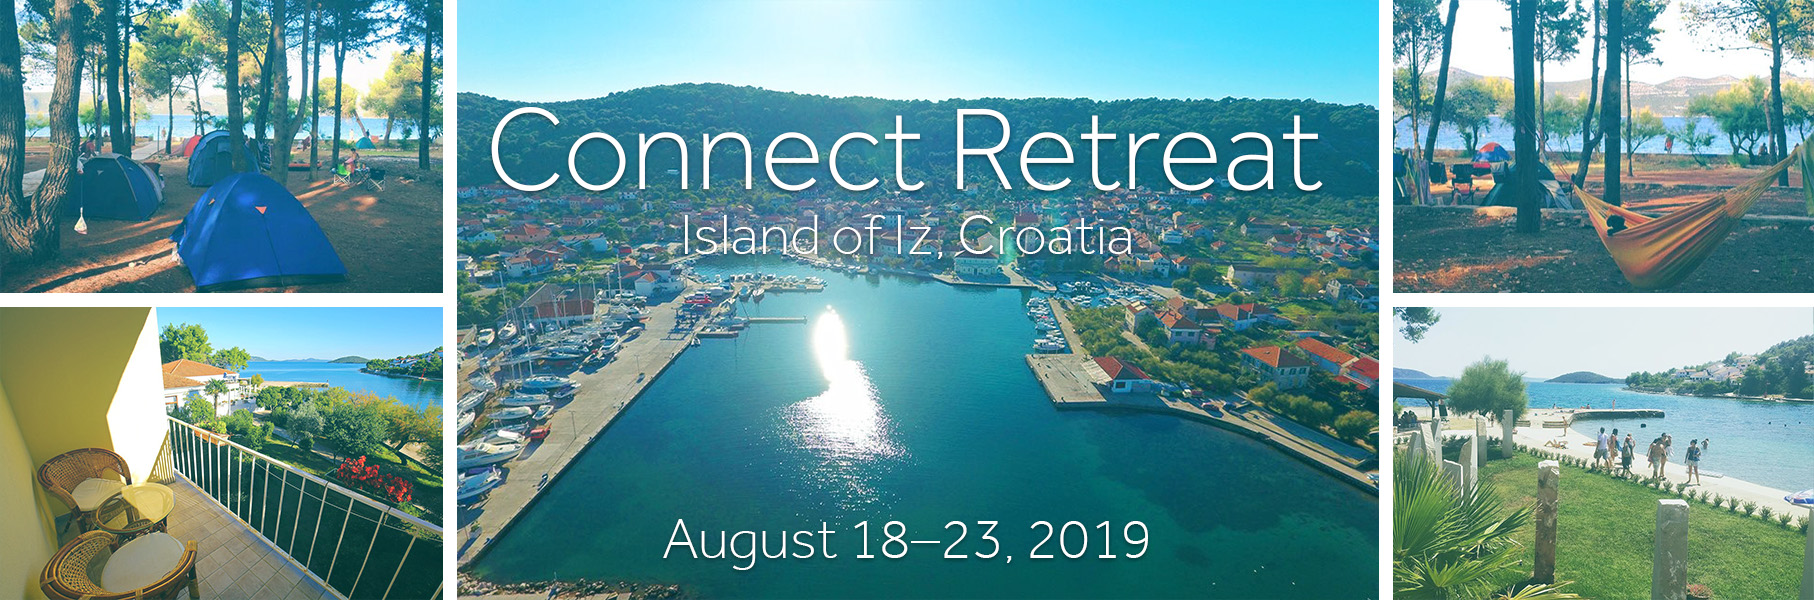 Croatia retreat banner.jpg